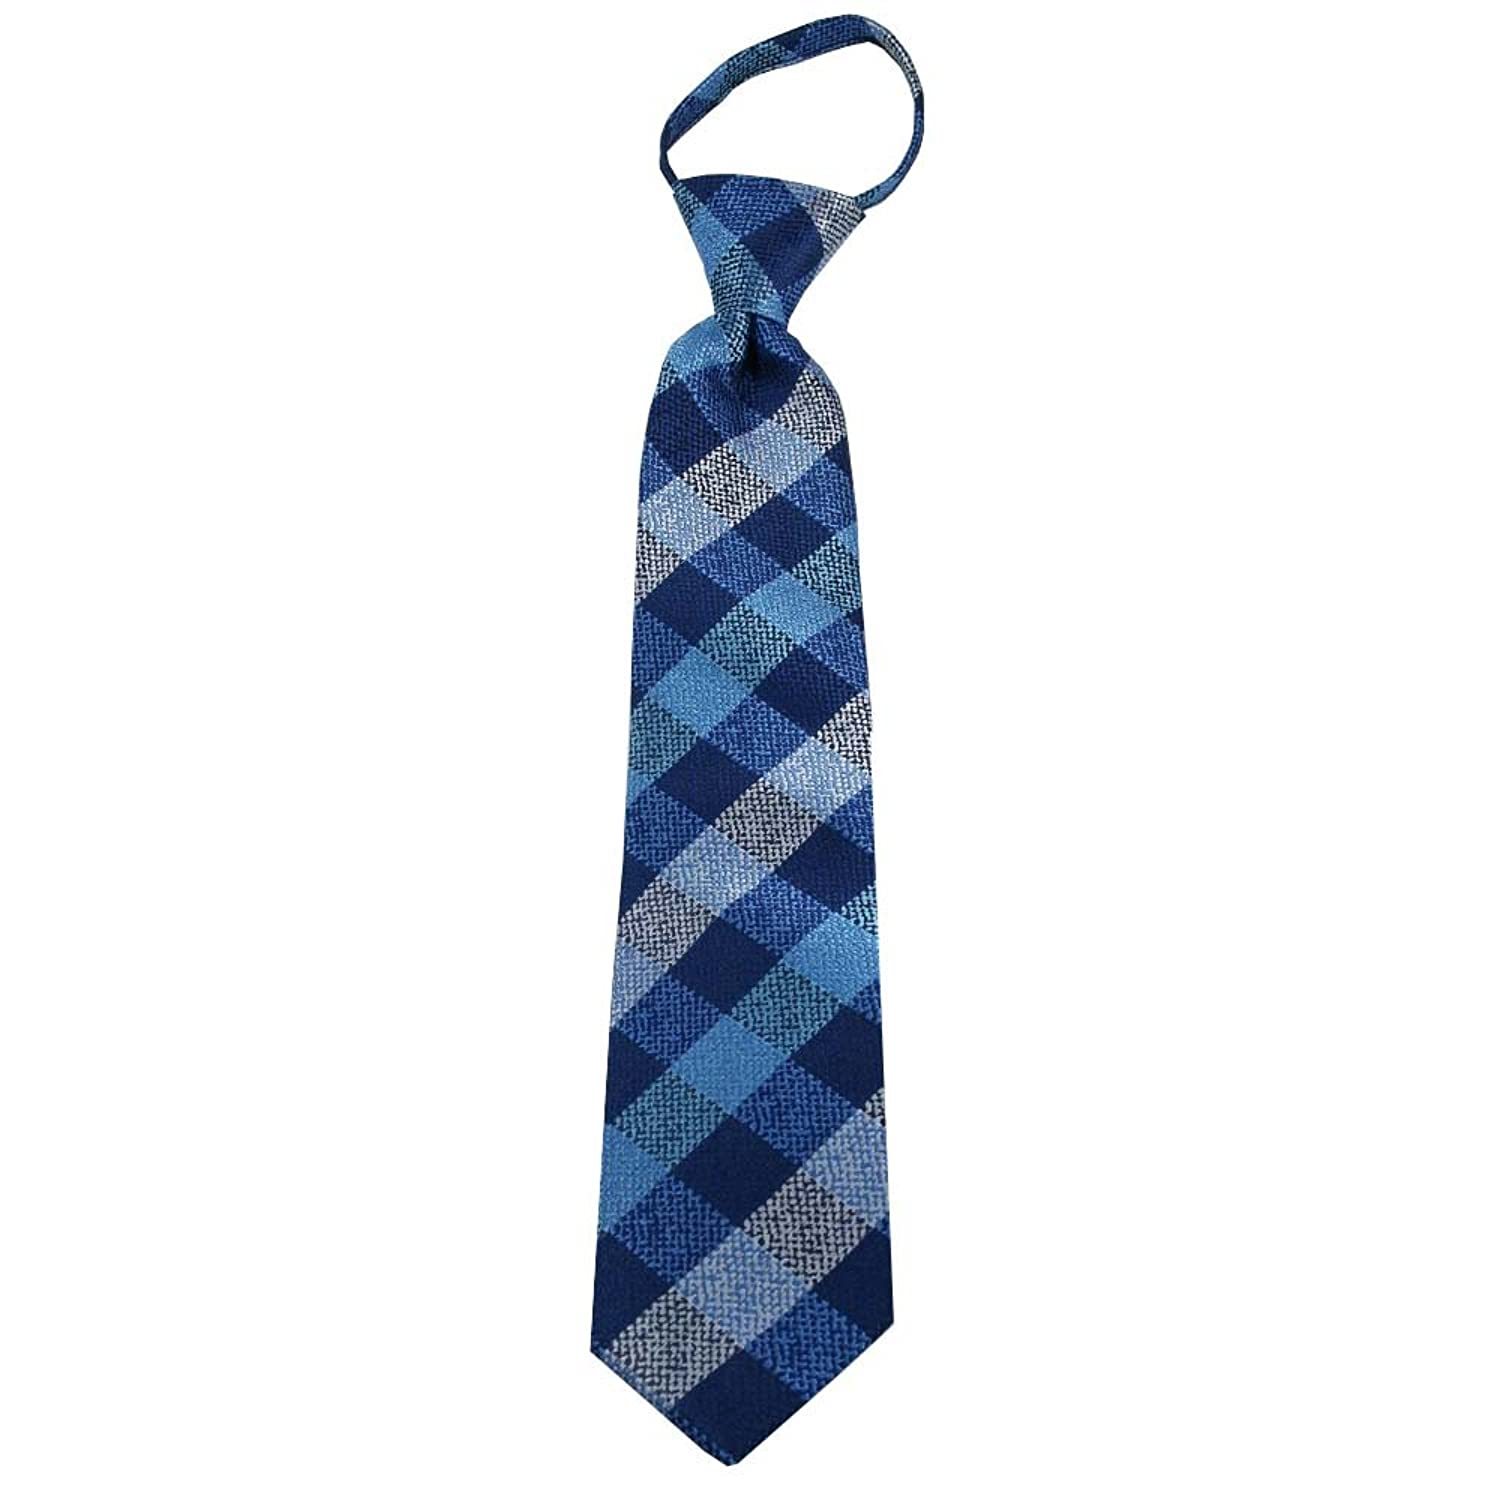 Johnson Brothers ACCESSORY ボーイズ US サイズ: Boys tie - 14″ (Zipper) カラー: ブルー